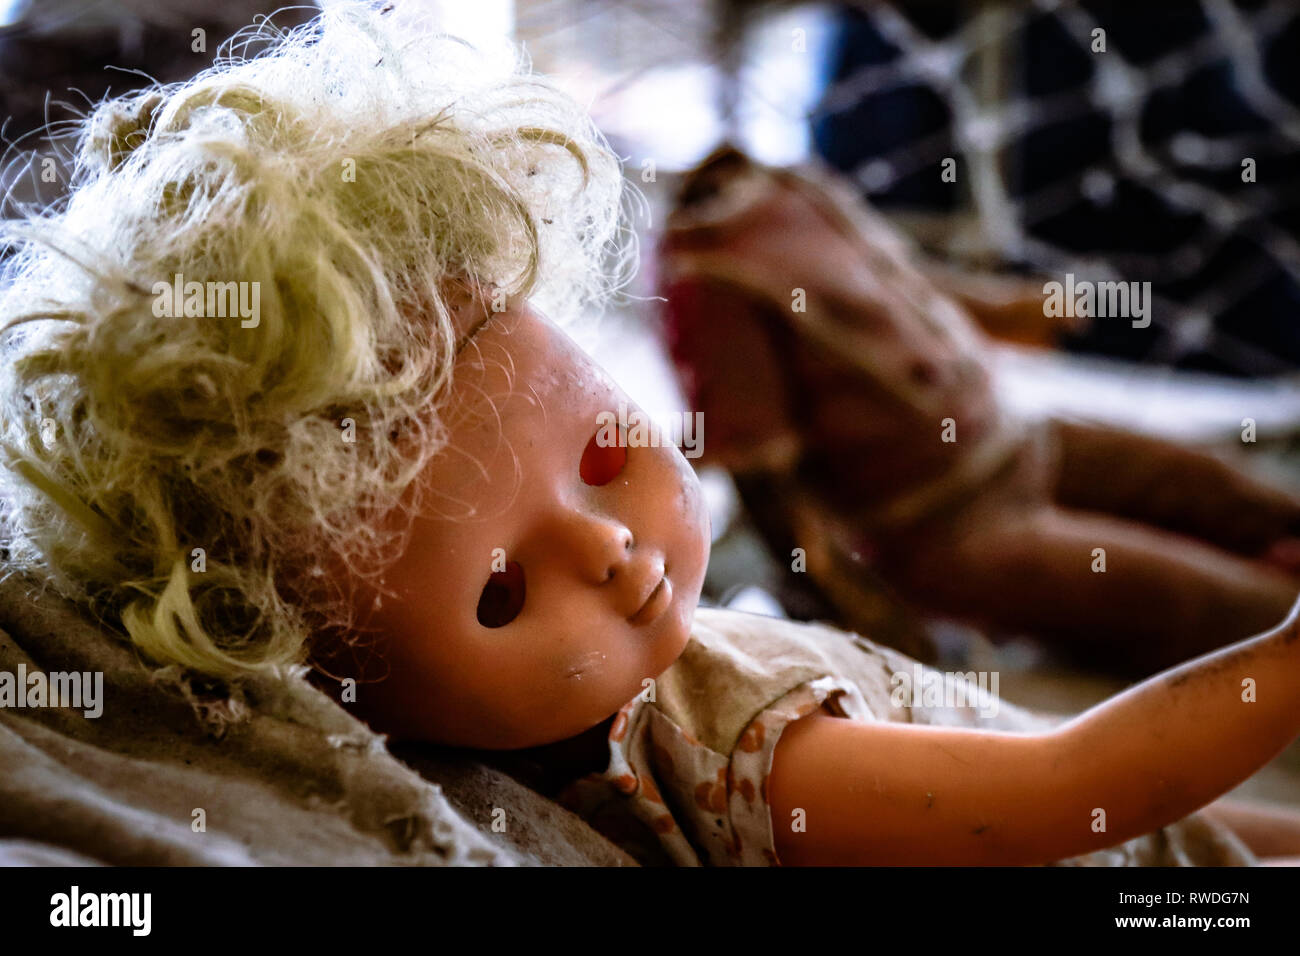 A creepy doll left on the site of the abandoned kindergarten inside Chernobyl's exclusion zone - Stock Image